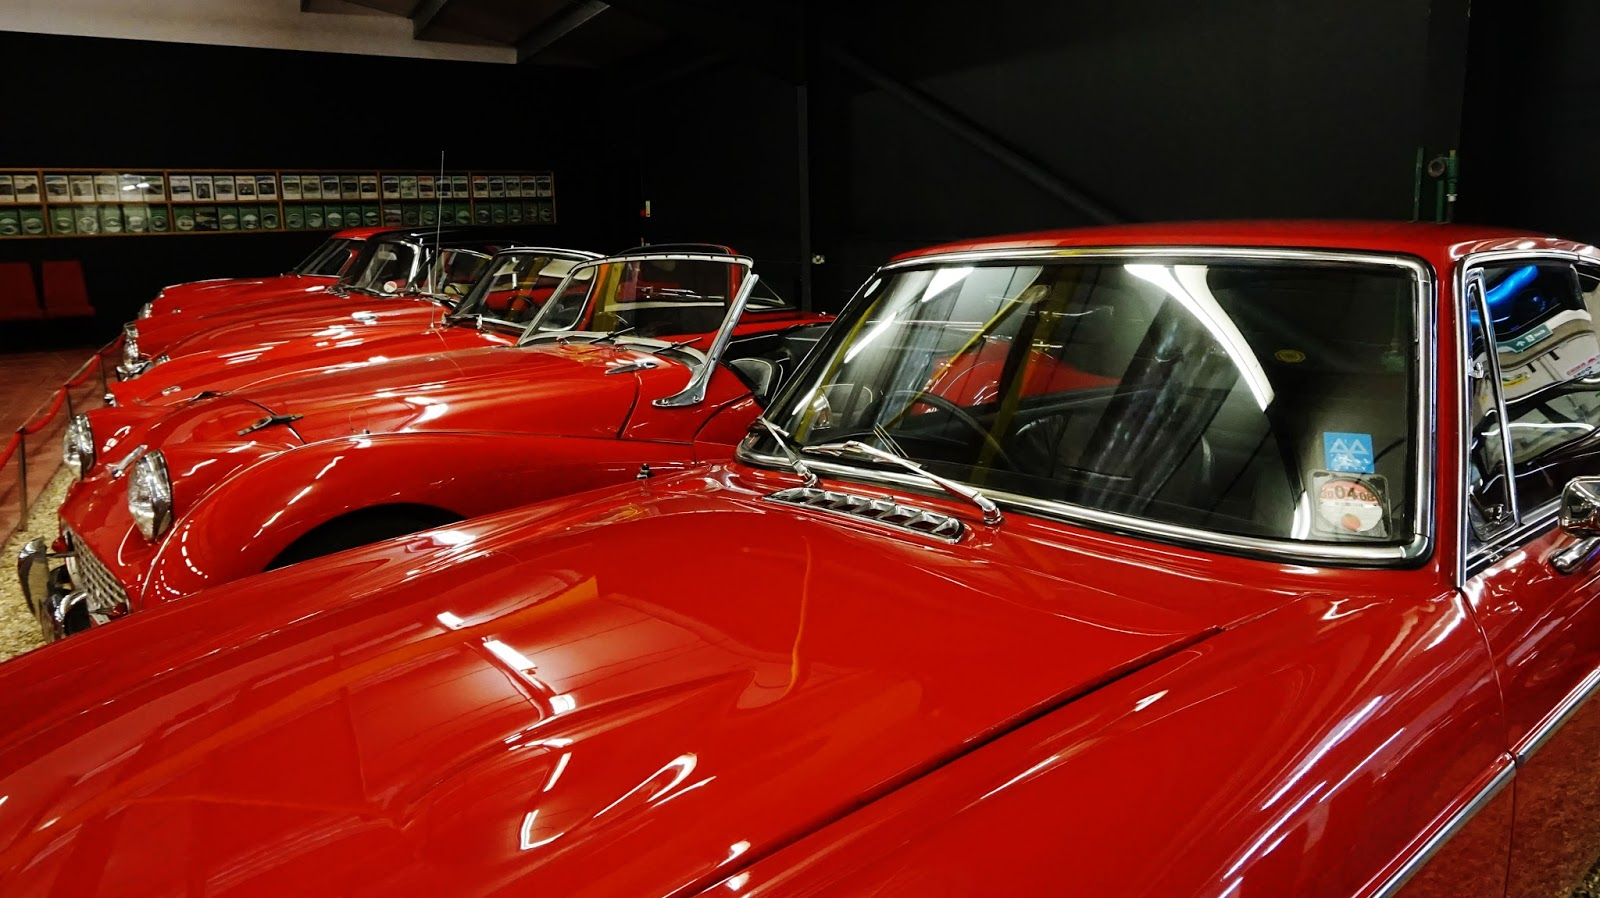 classic cars red room sports car nostalgic haynes motor museum